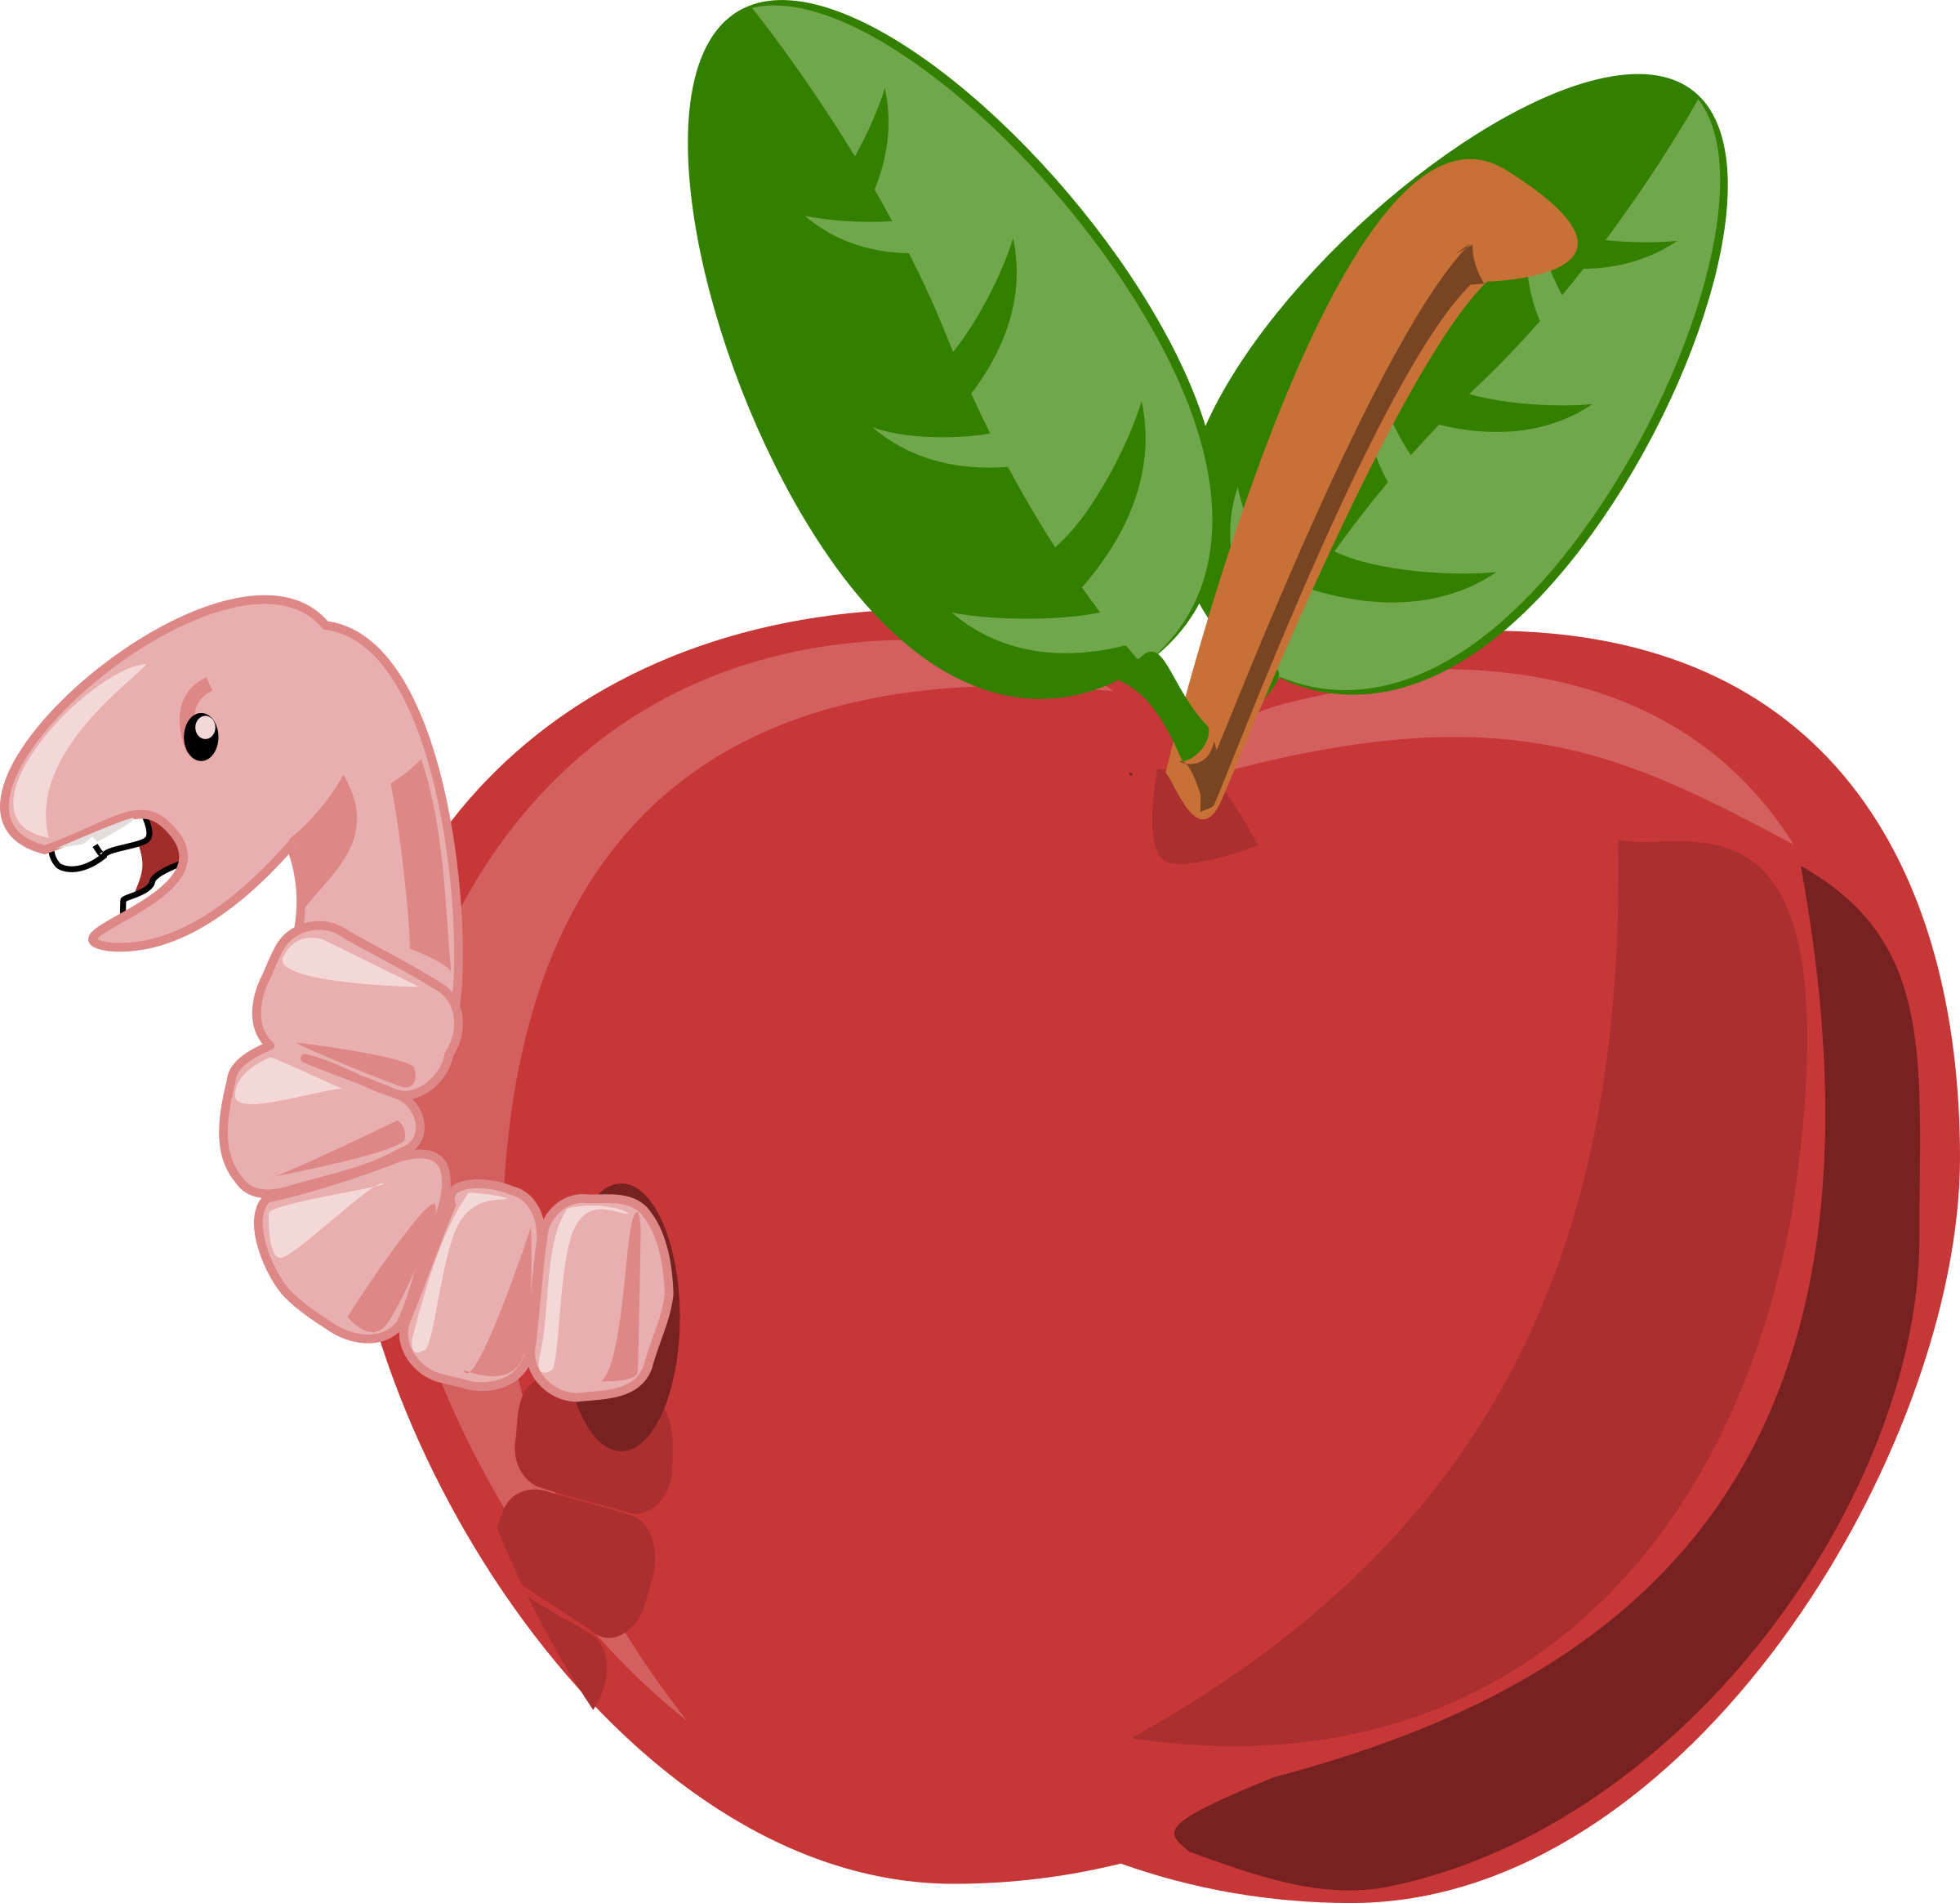 Rg cartoon with of. Worm clipart apple graphic library